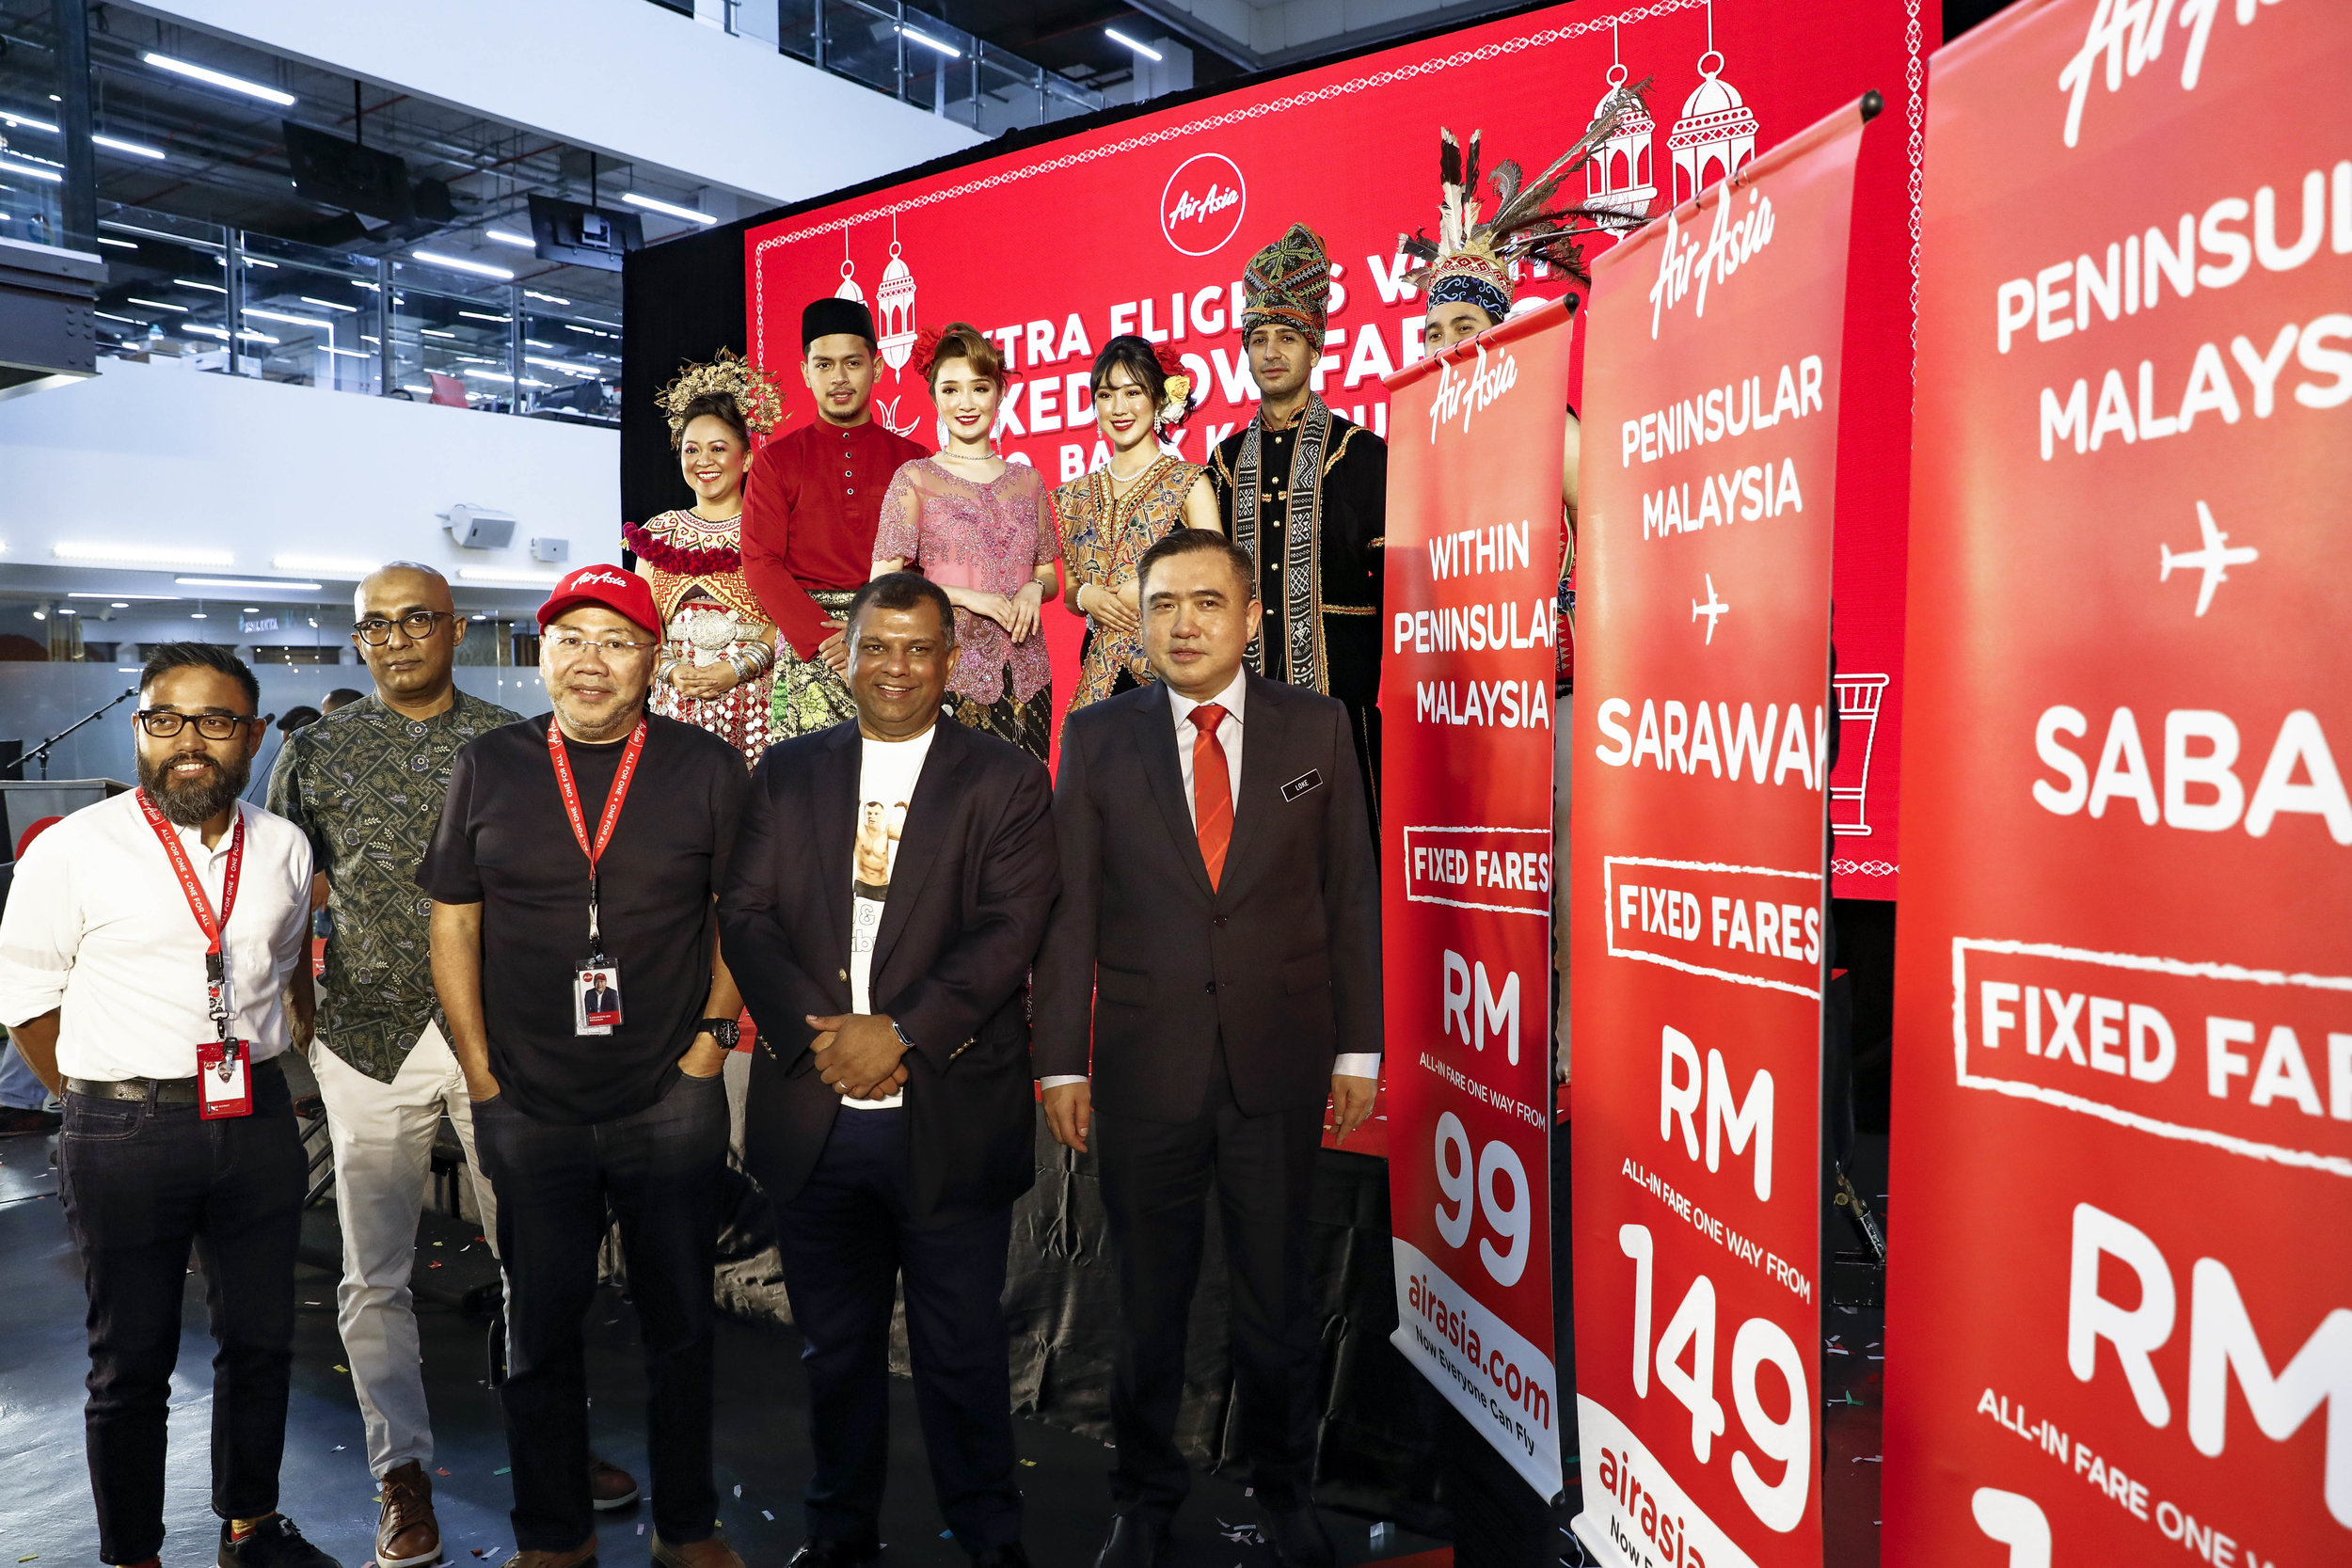 Photo Caption:  (From left) AirAsia Malaysia CEO Riad Asmat, AirAsia Deputy Group CEO (Airlines) Bo Lingam, AirAsia Executive Chairman Datuk Kamarudin Meranun, AirAsia Group CEO Tony Fernandes and Minister of Transport YB Loke Siew Fook at the launch of AirAsia late night flights with fixed fares today at AirAsia RedQ.